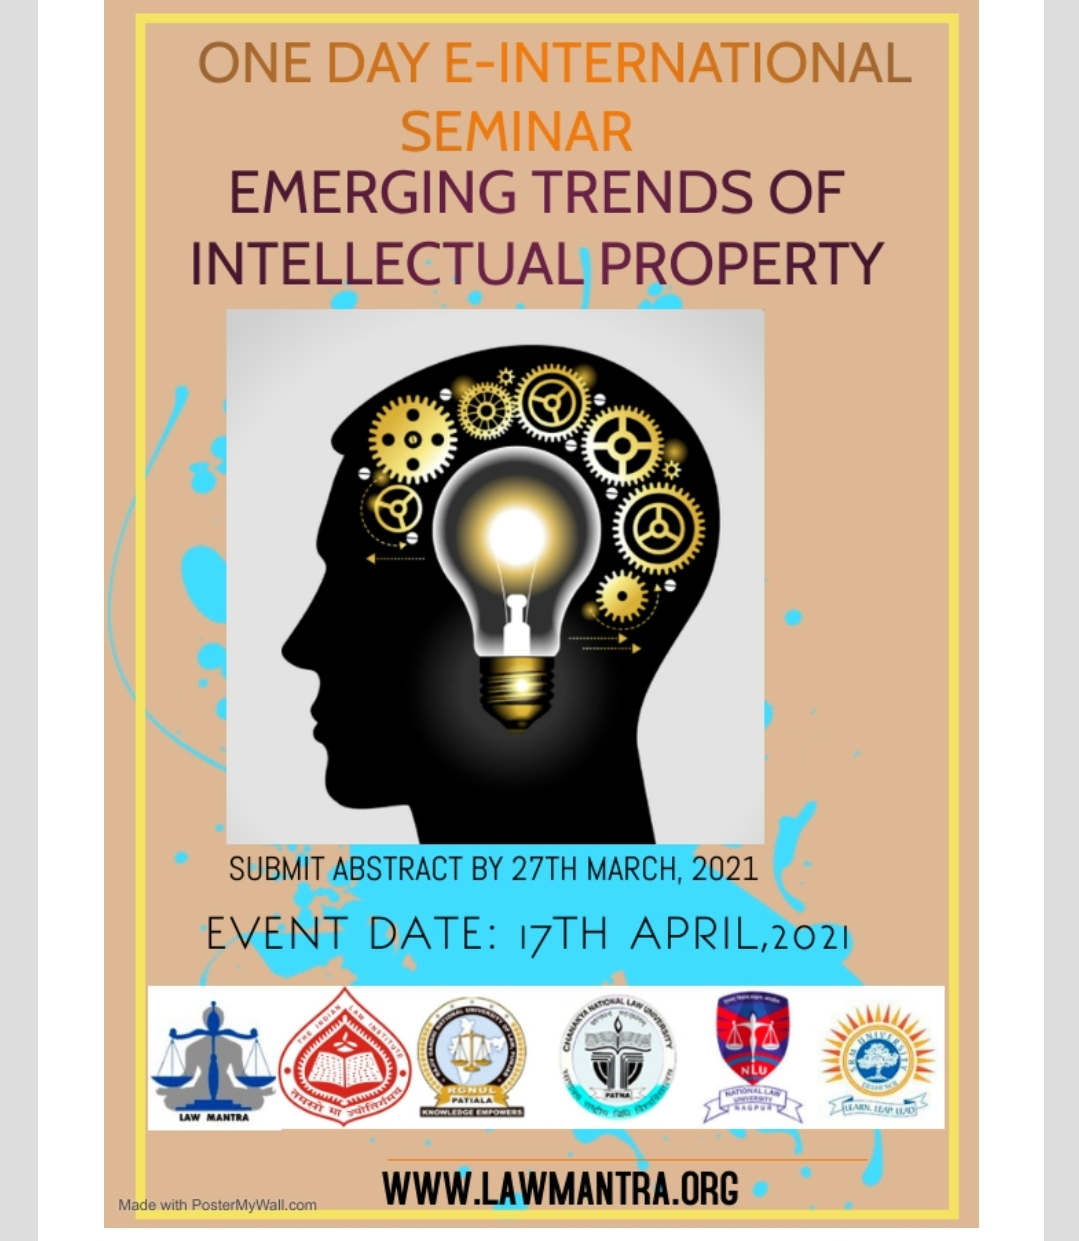 ONE DAY E- INTERNATIONAL SEMINAR ON EMERGING TRENDS OF INTELLECTUAL PROPERTY RIGHTS 17TH APRIL, 2021; SUBMIT ABSTRACT BY 25TH MARCH (APPLY NOW)